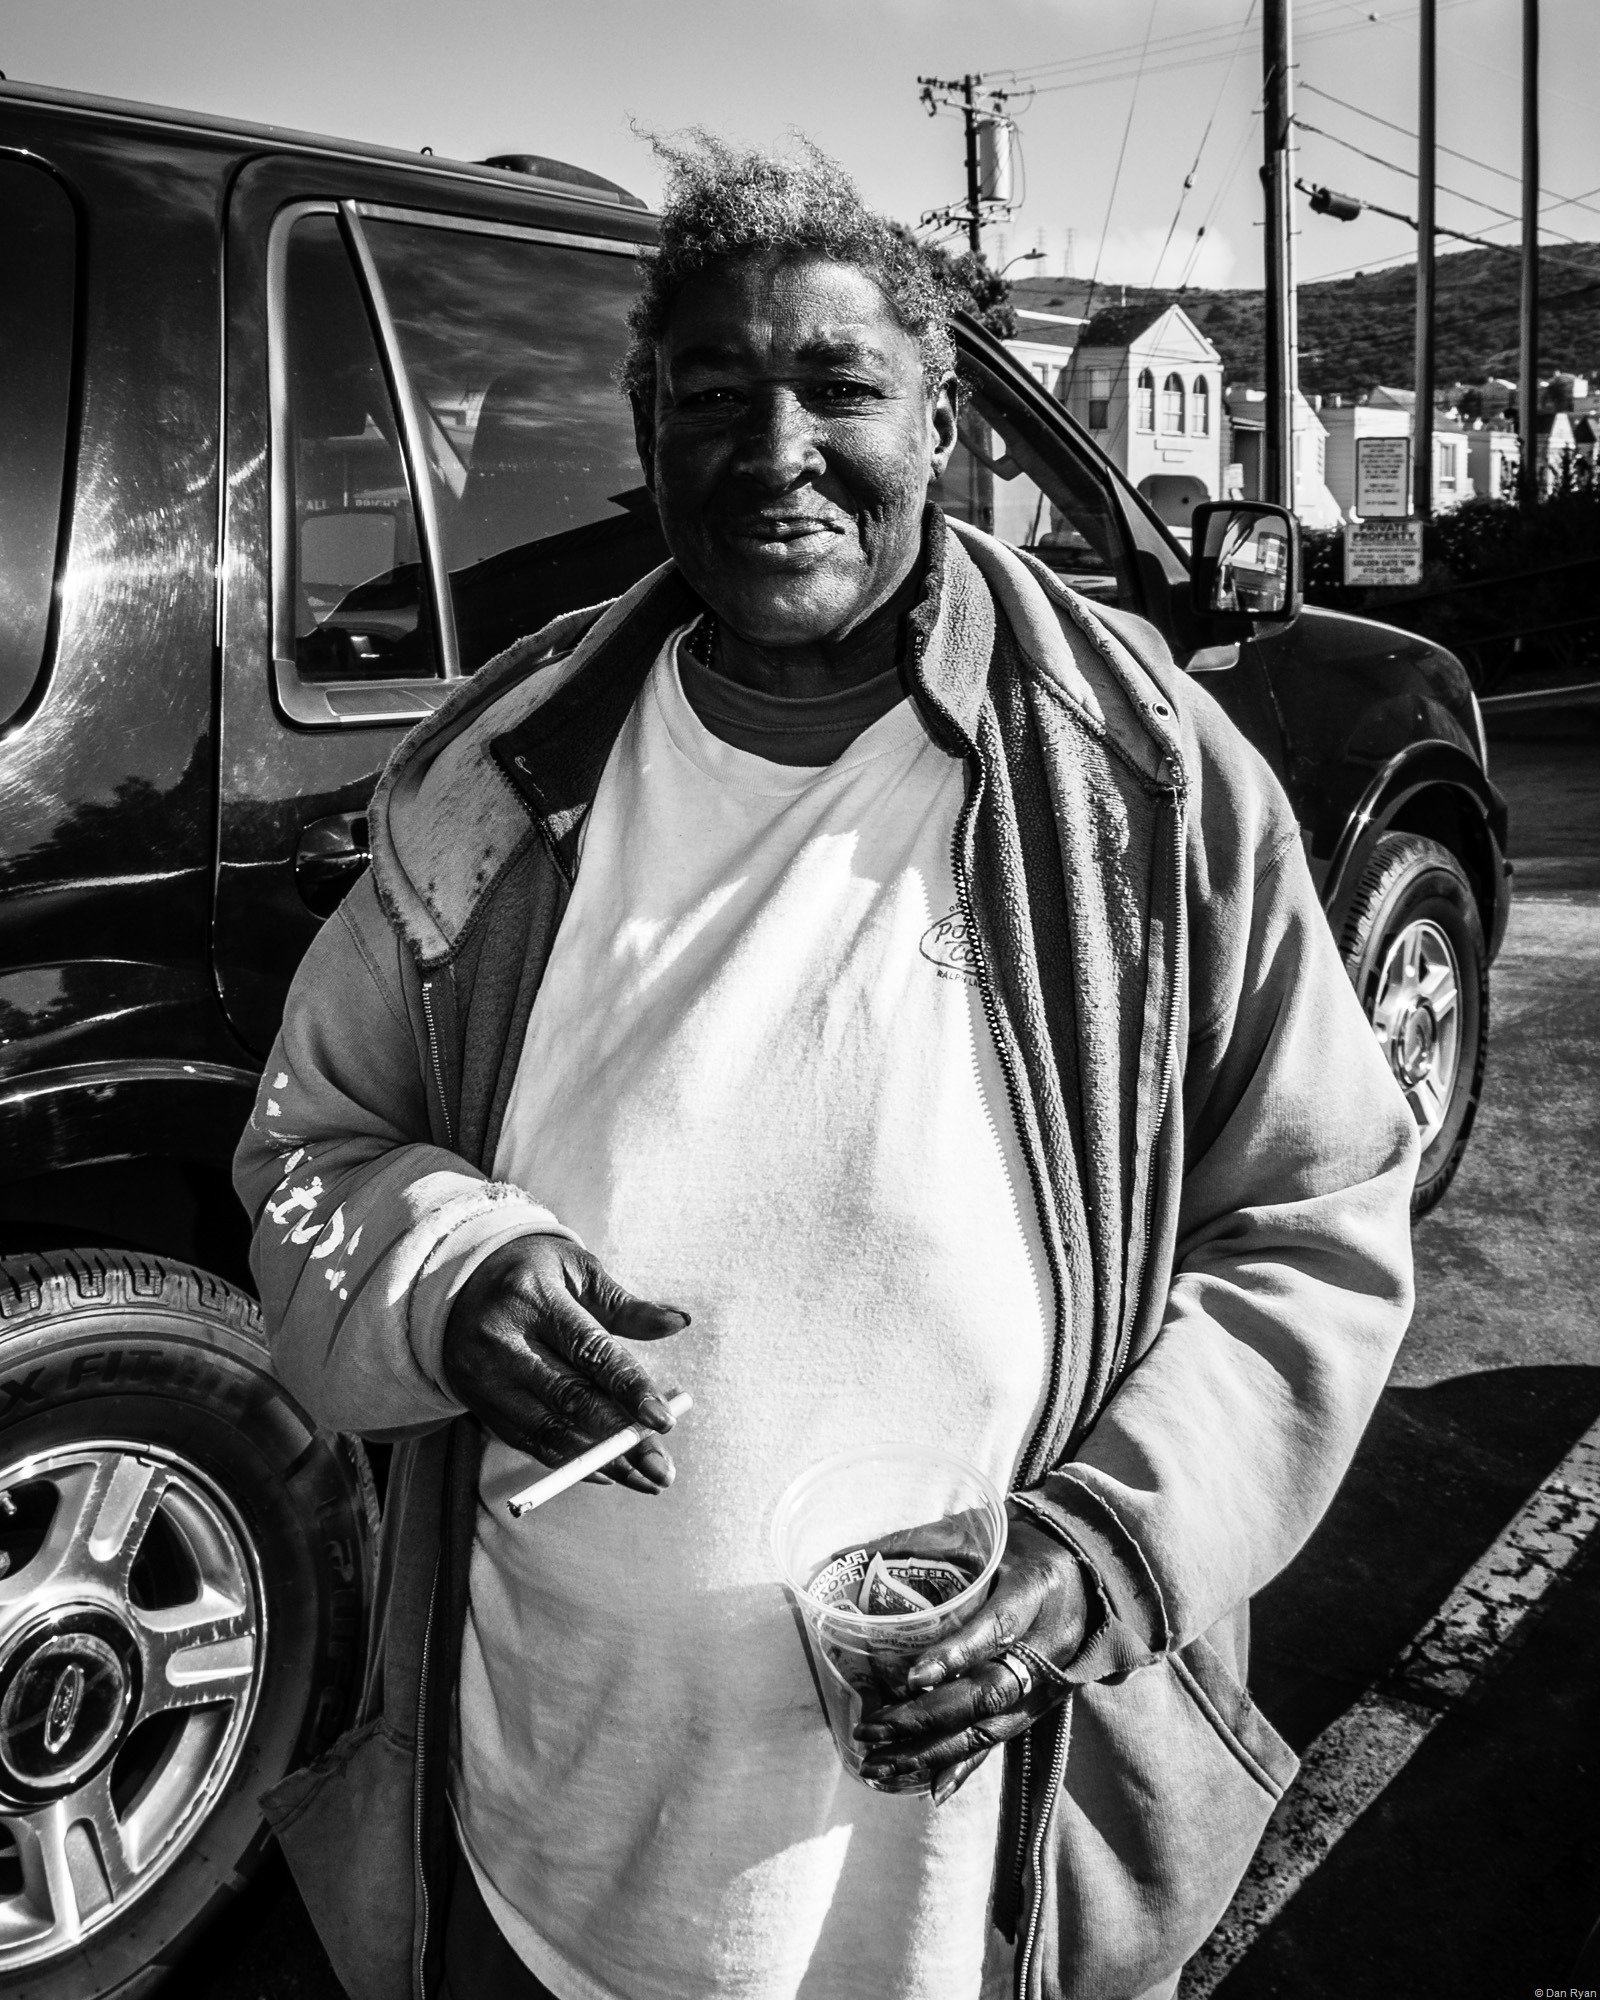 African-American homeless woman